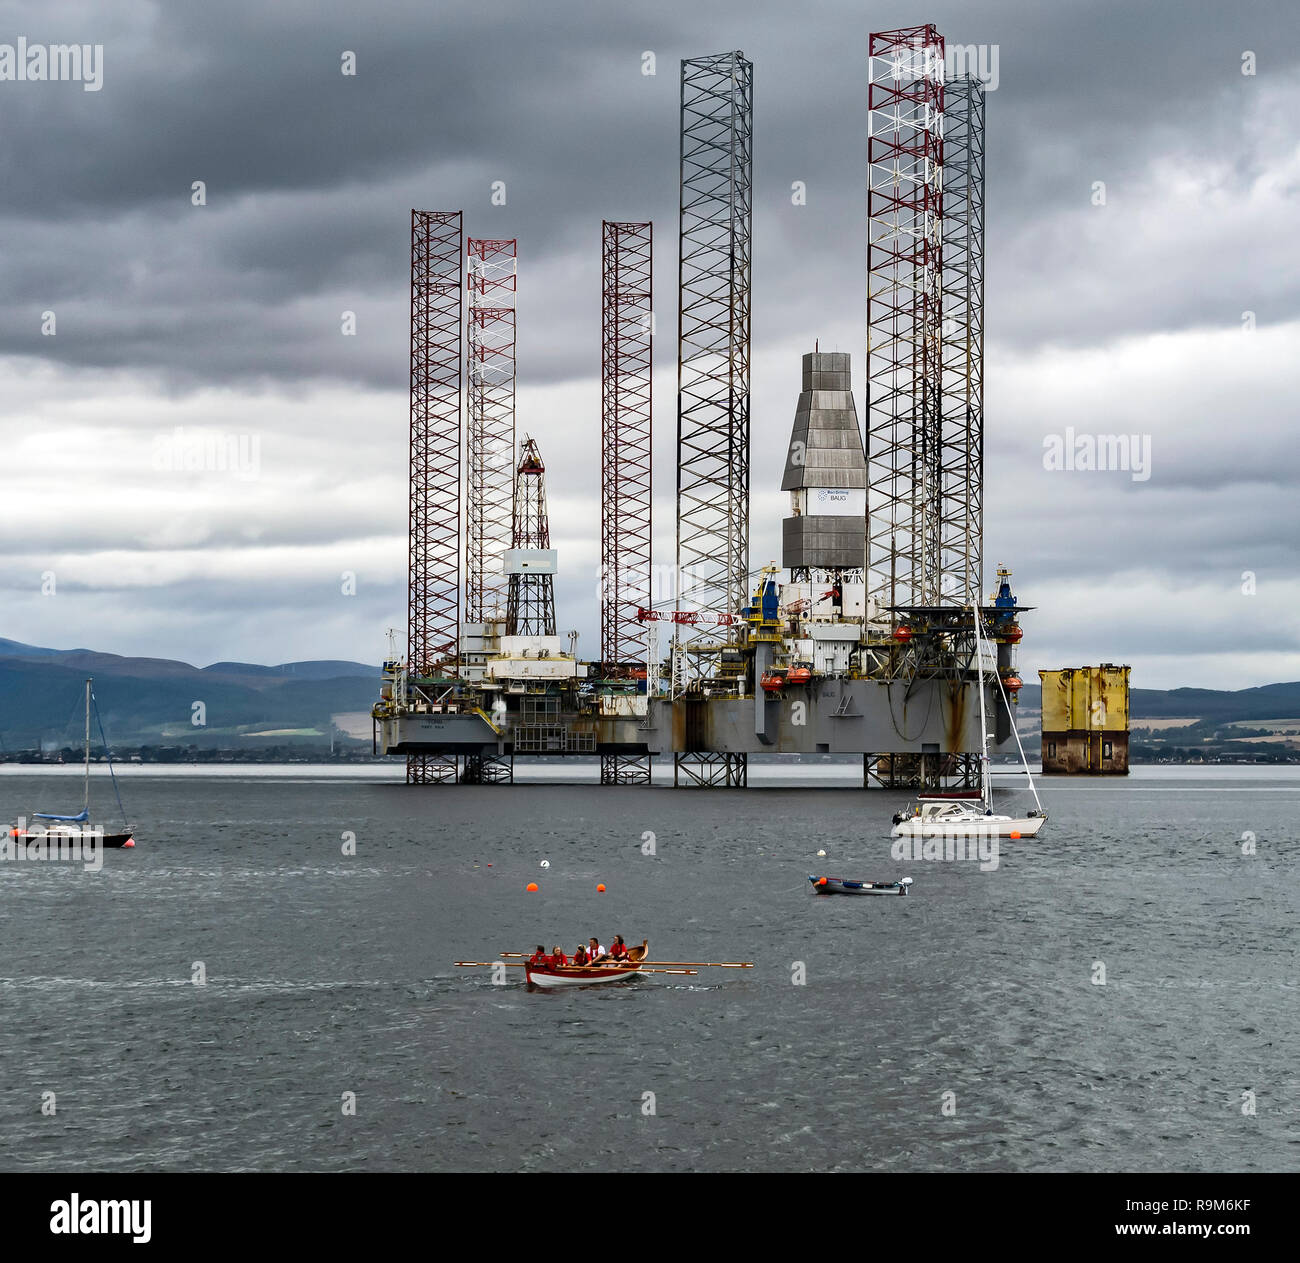 Bor Drilling owned drilling rigs Fonn & Baug moored in Cromarty Firth outside Cromarty in Highland Scotland UK - Stock Image